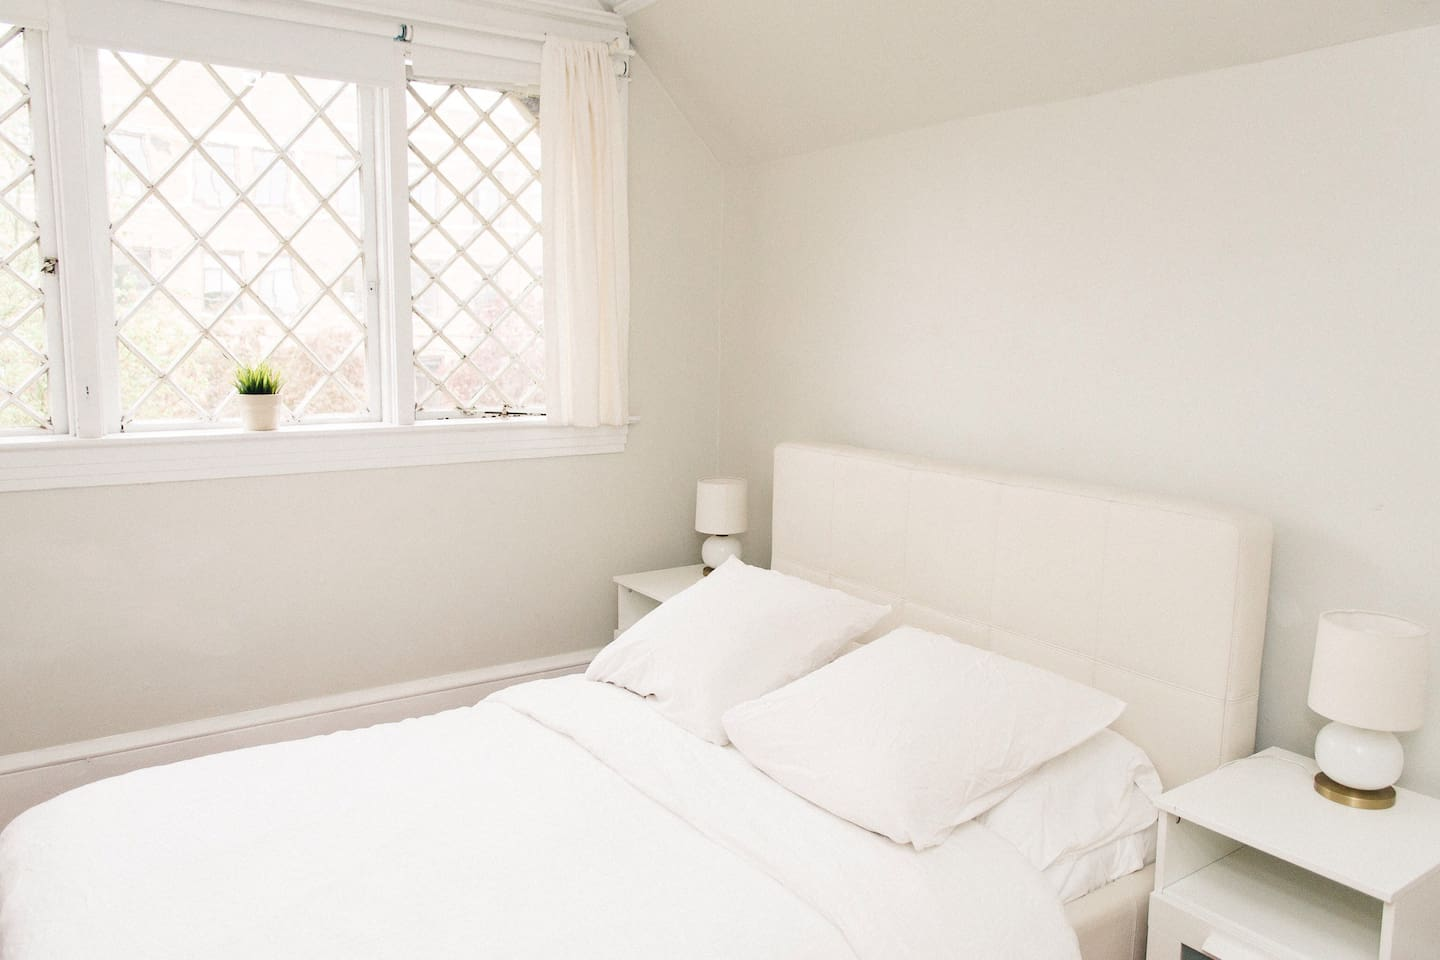 Clean white room with great windows and natural light